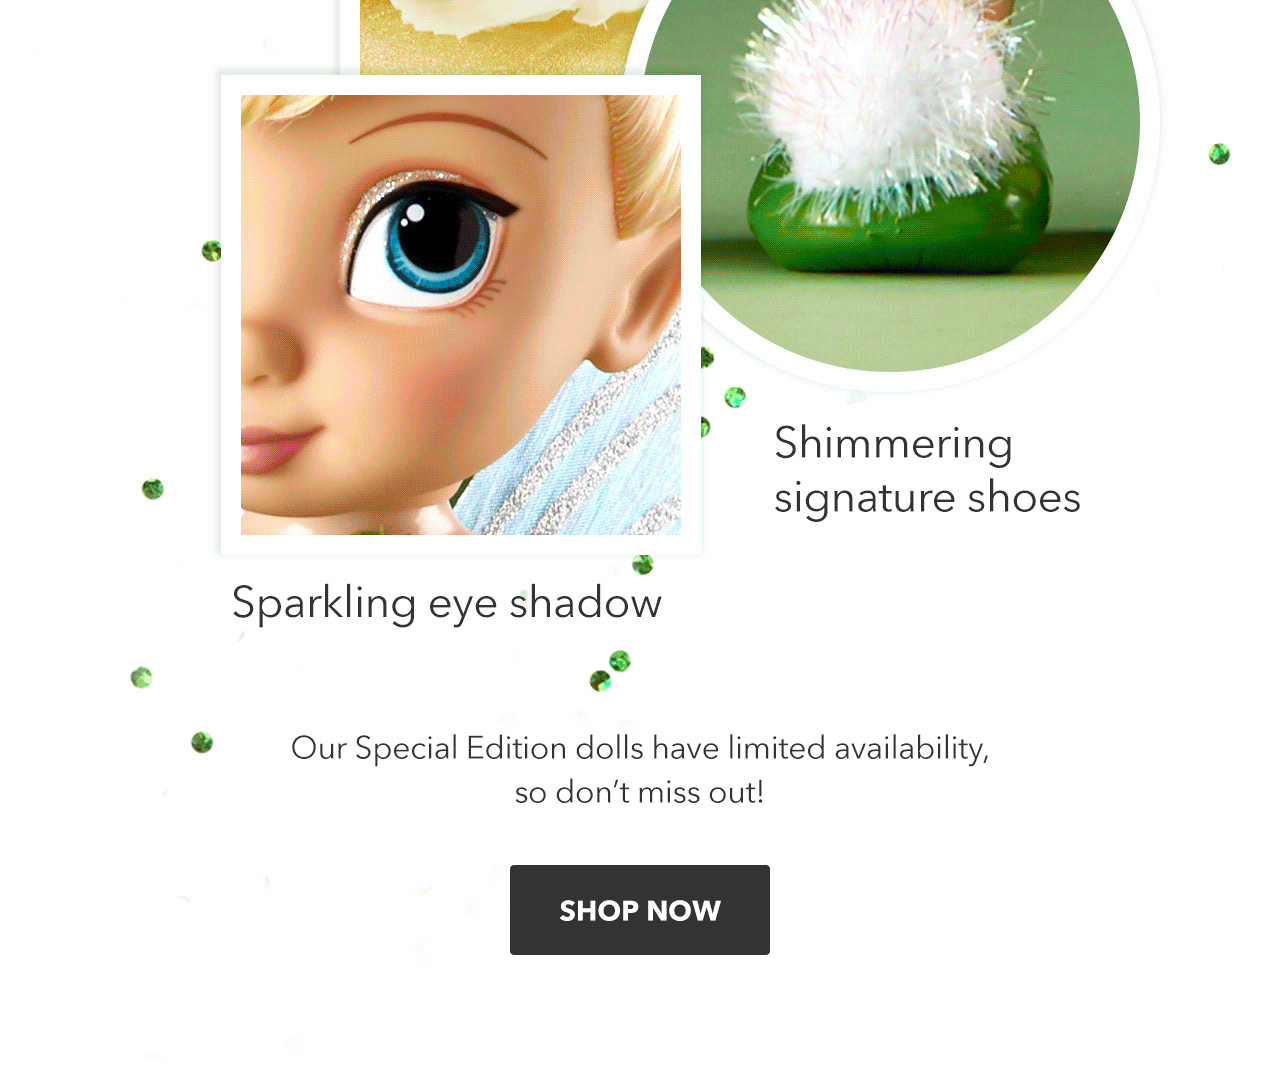 Tinkerbell Limited Edition Doll | Shop Now